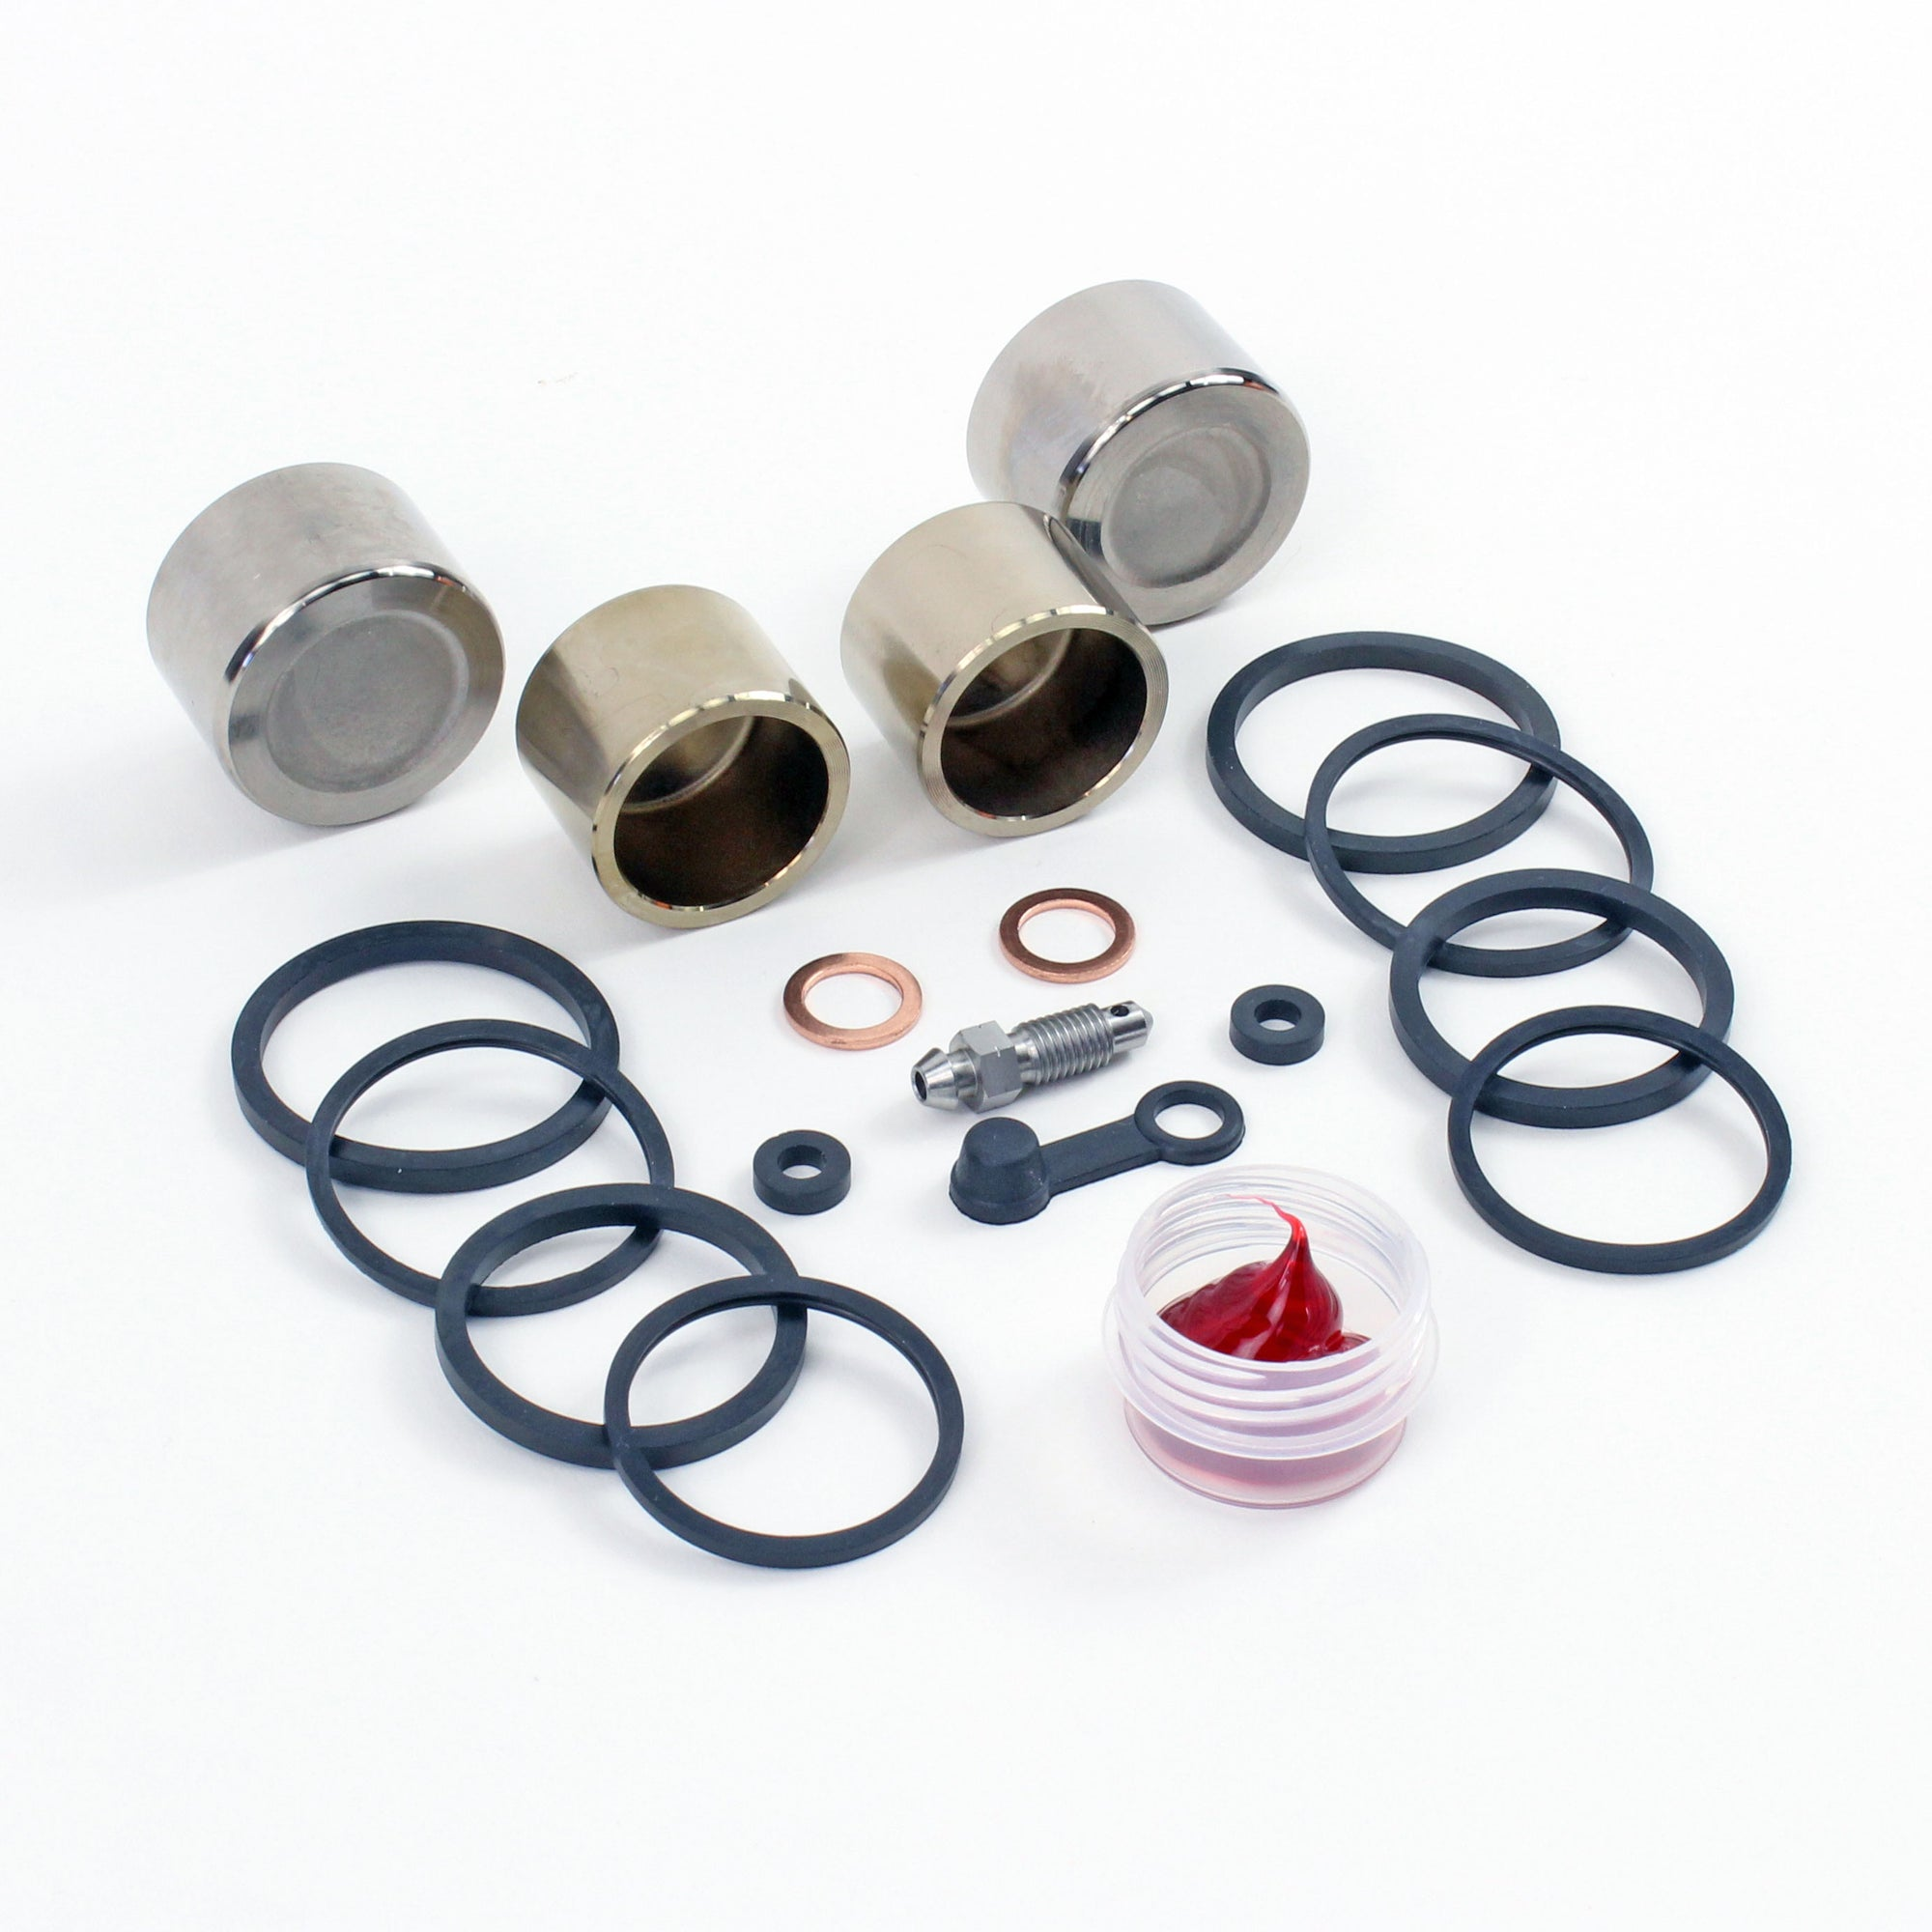 1994 - 2002 TRIUMPH TROPHY 900 - FRONT BRAKE CALIPER PISTON & SEAL KIT